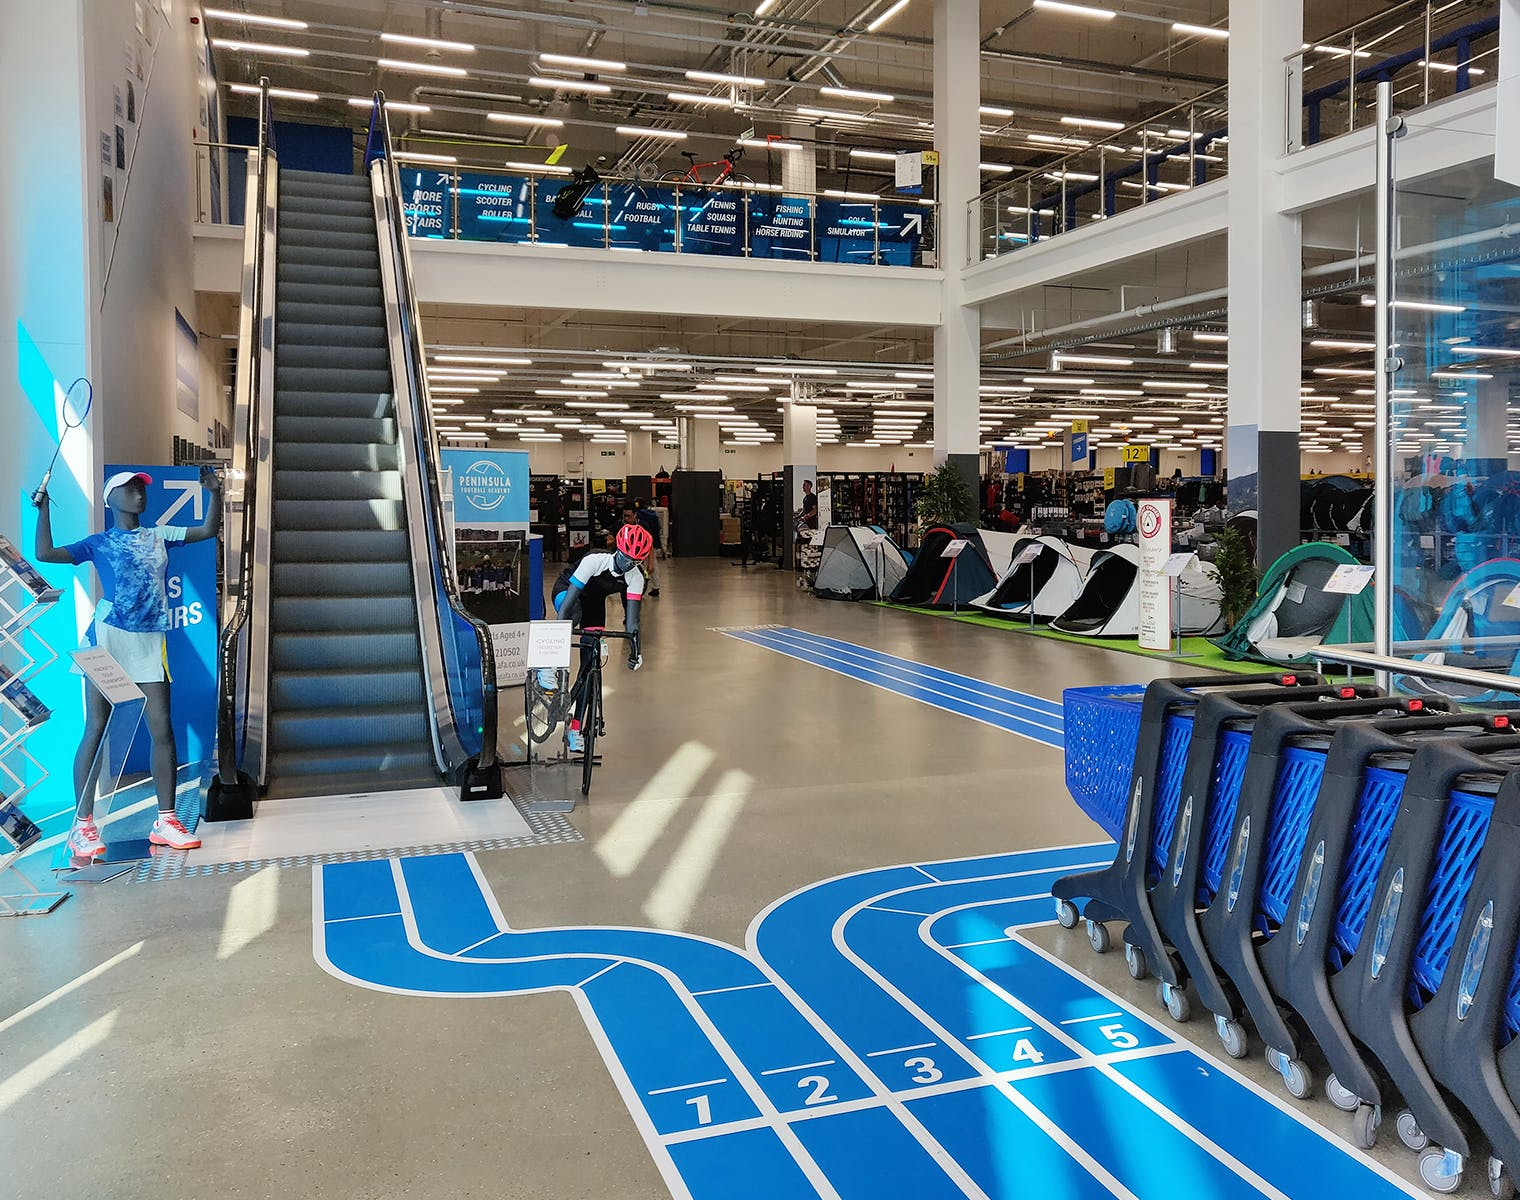 6dbab4fb6 The entrance of the Decathlon store in Surrey Quays